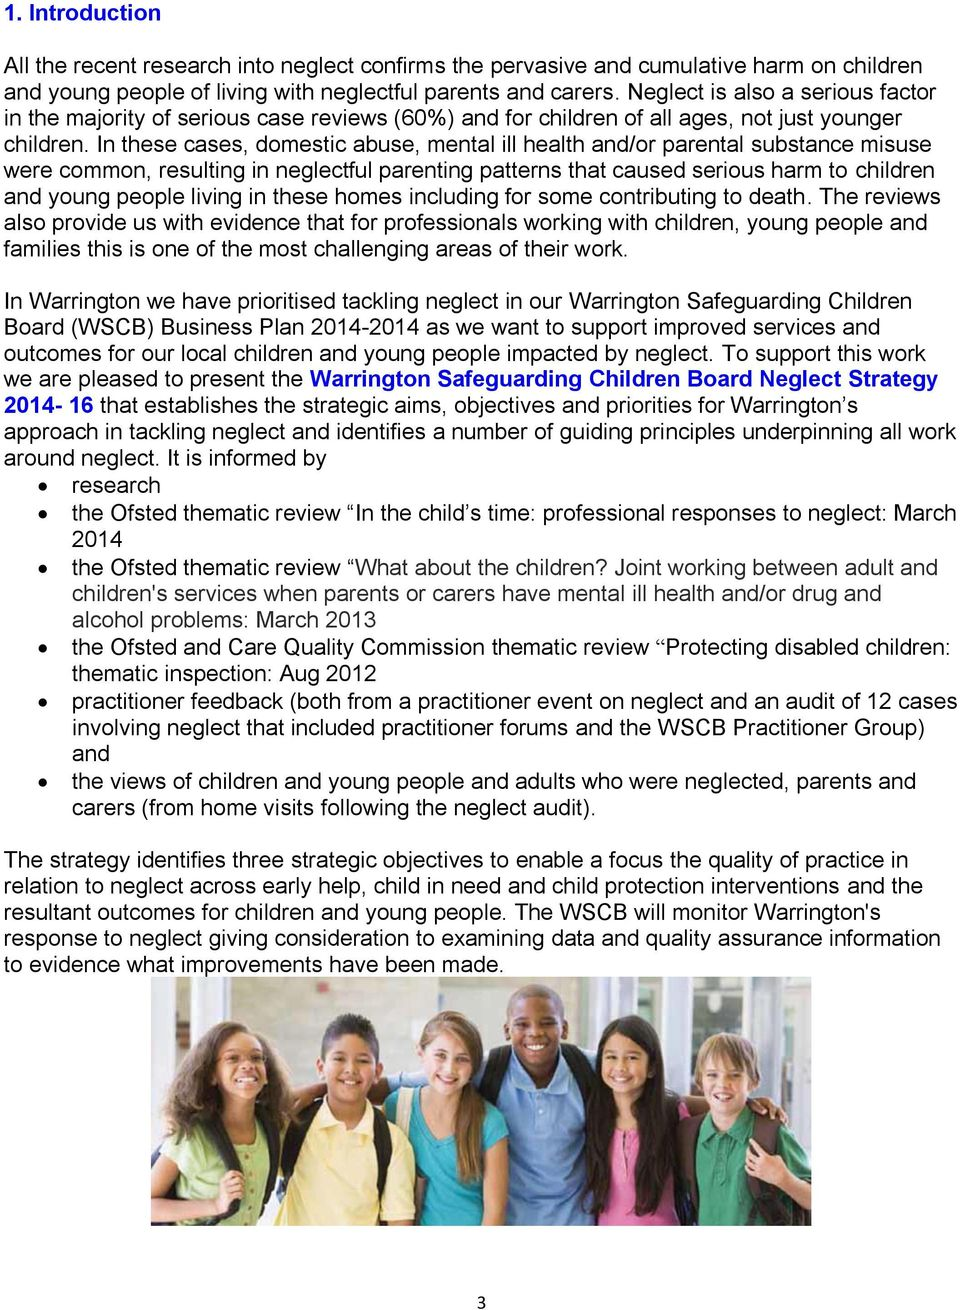 In these cases, domestic abuse, mental ill health and/or parental substance misuse were common, resulting in neglectful parenting patterns that caused serious harm to children and young people living